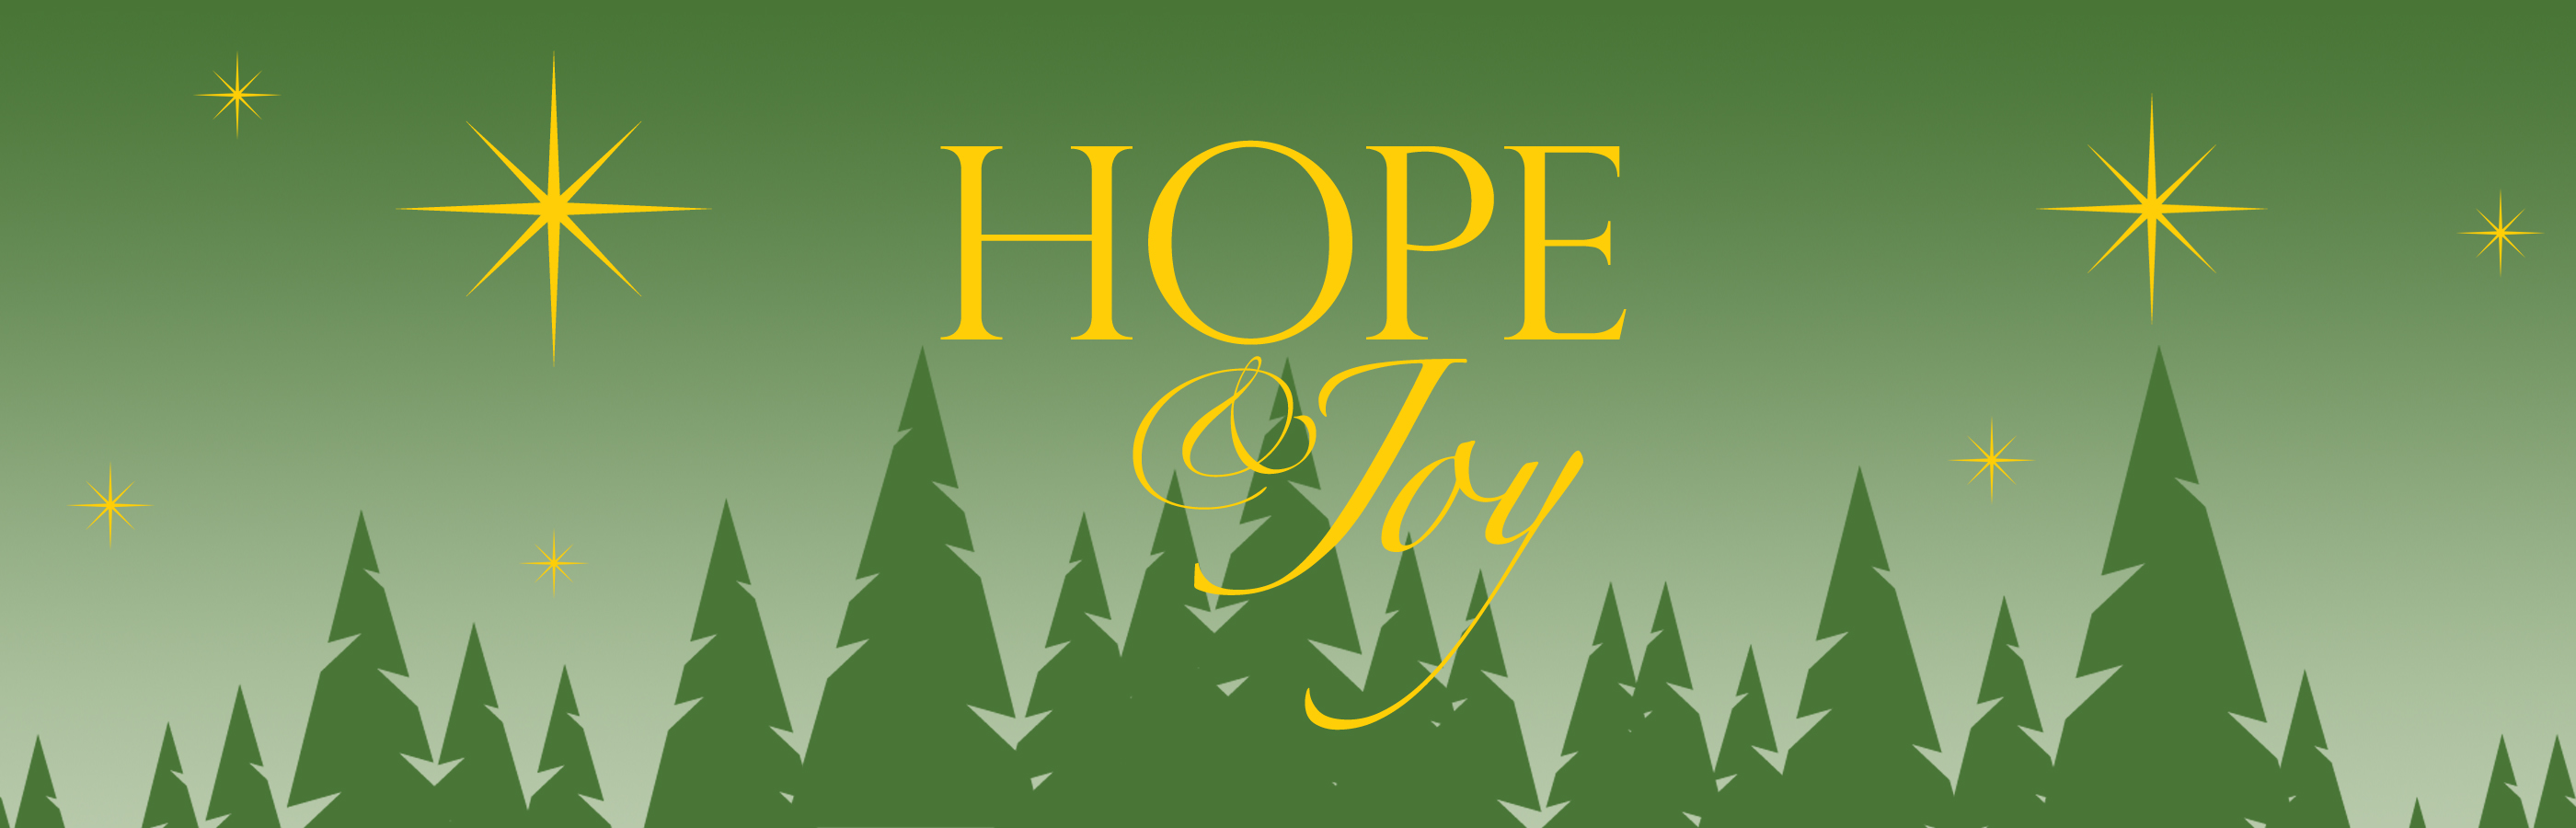 Christmas In The Forest 2021 Theme - Hope & Joy